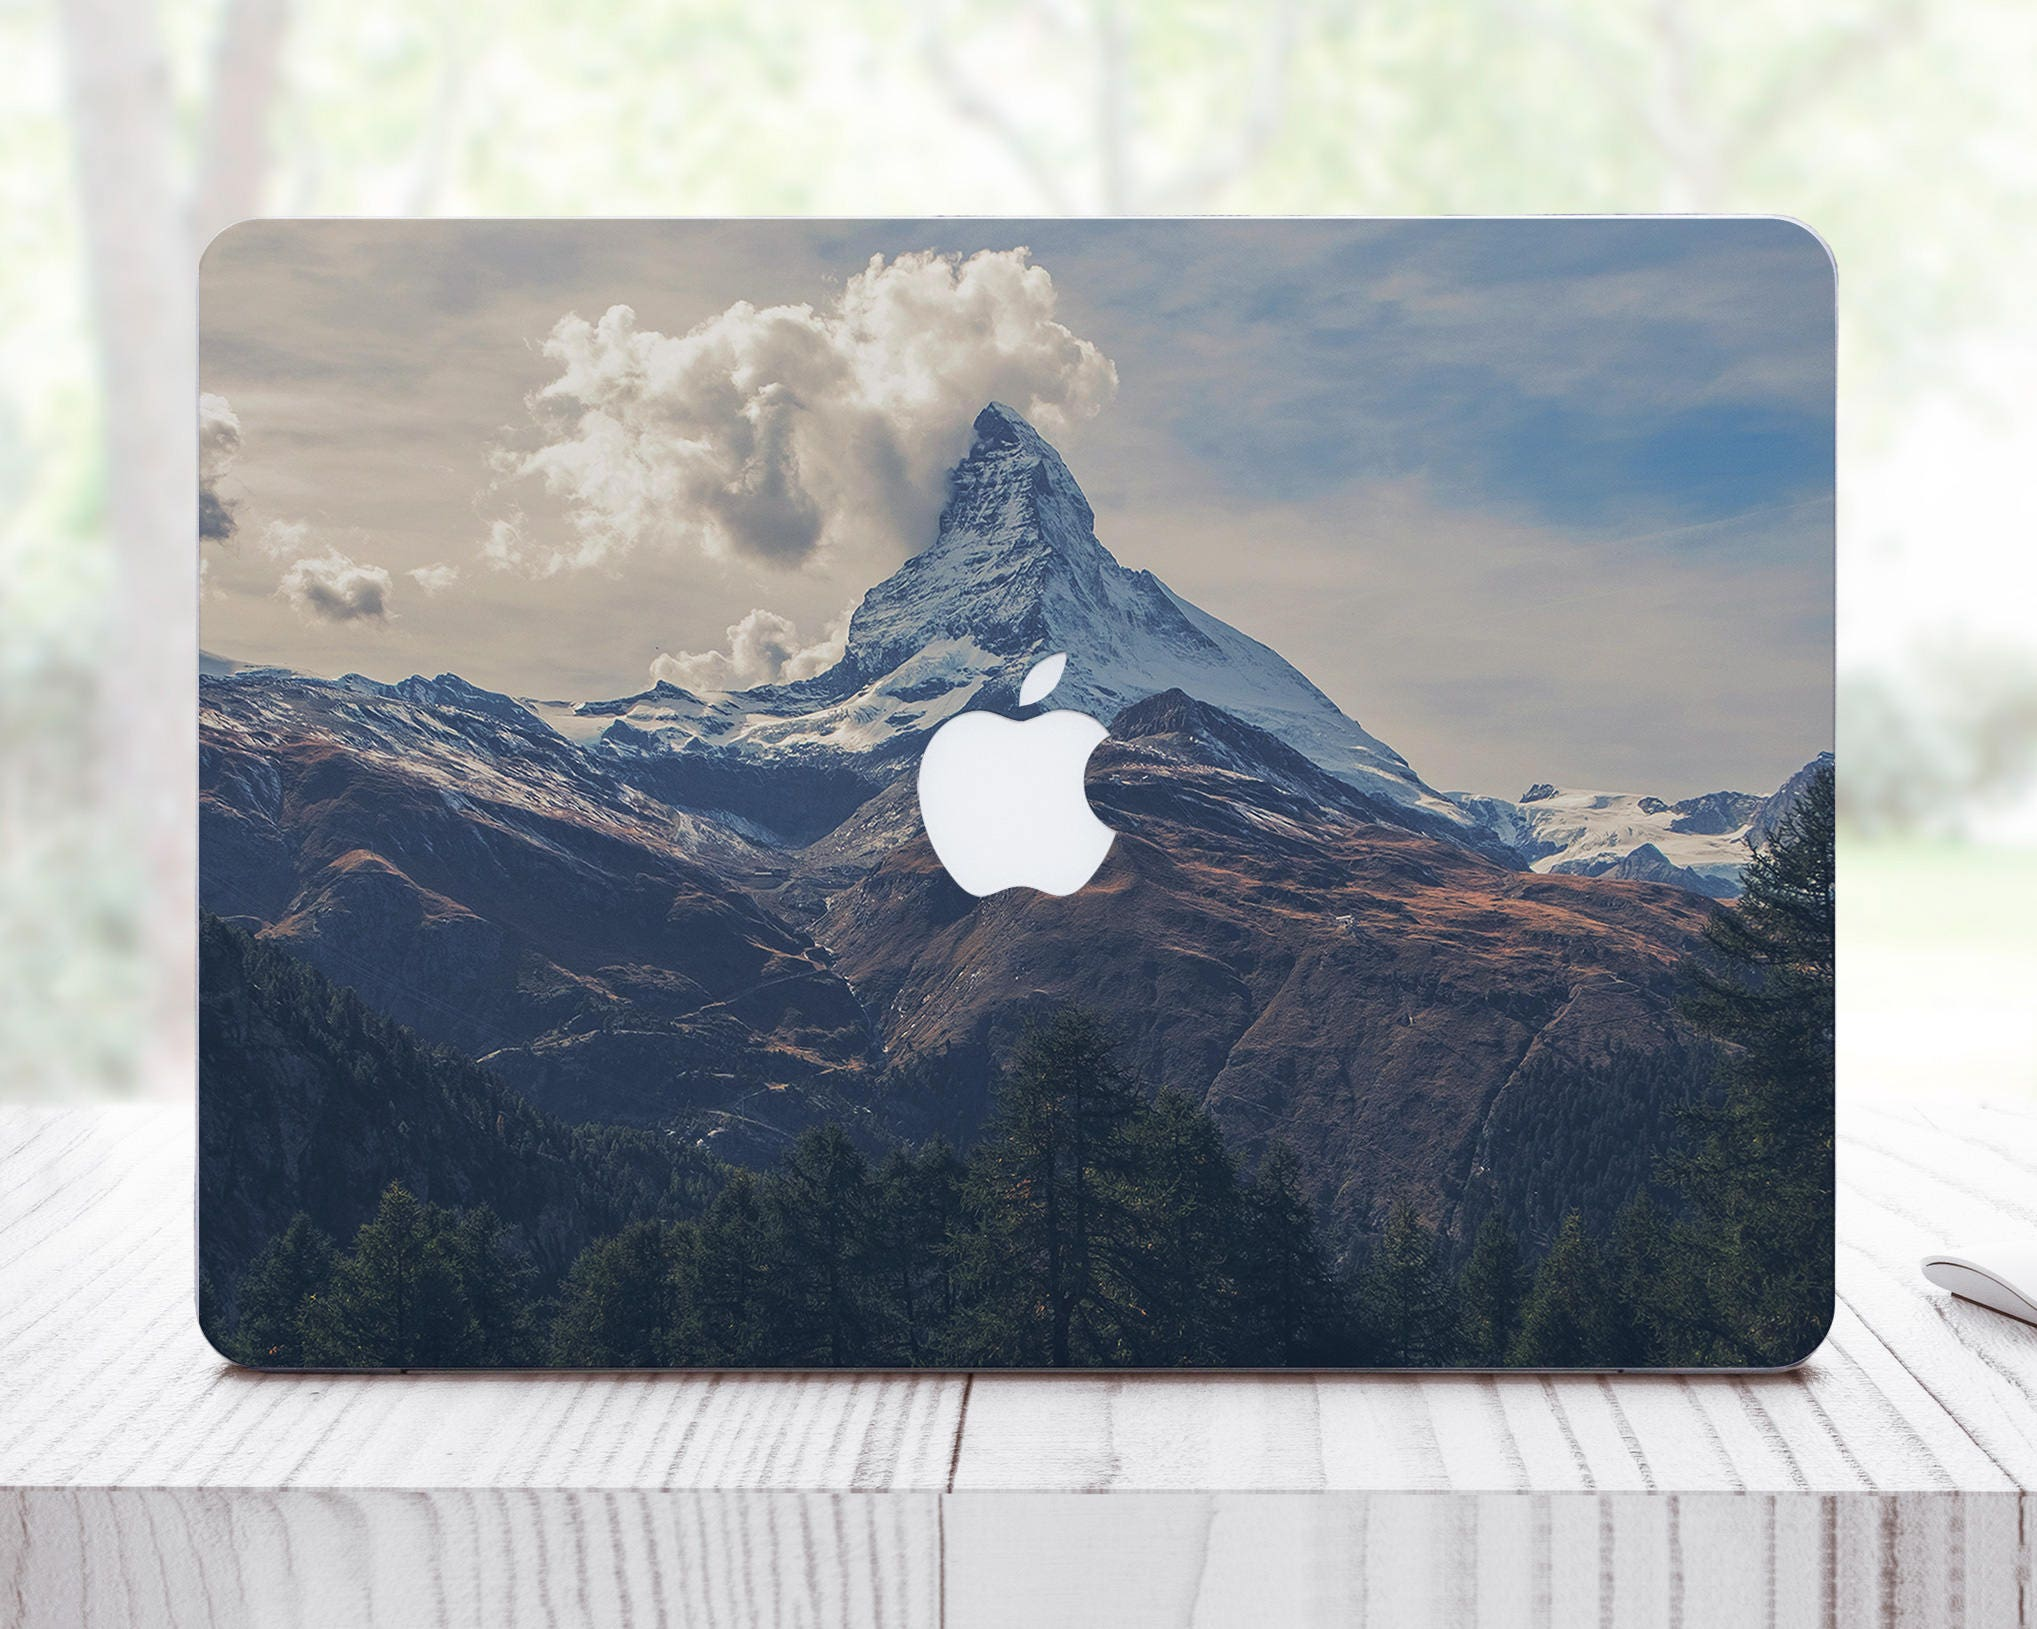 Mountain Decal MacBook Air 13 Inch Skin Pro Retina Decal Laptop Vinyl Decal MacBook 12 Decal MacBook Pro Gray Decal Macbook Air ES0030